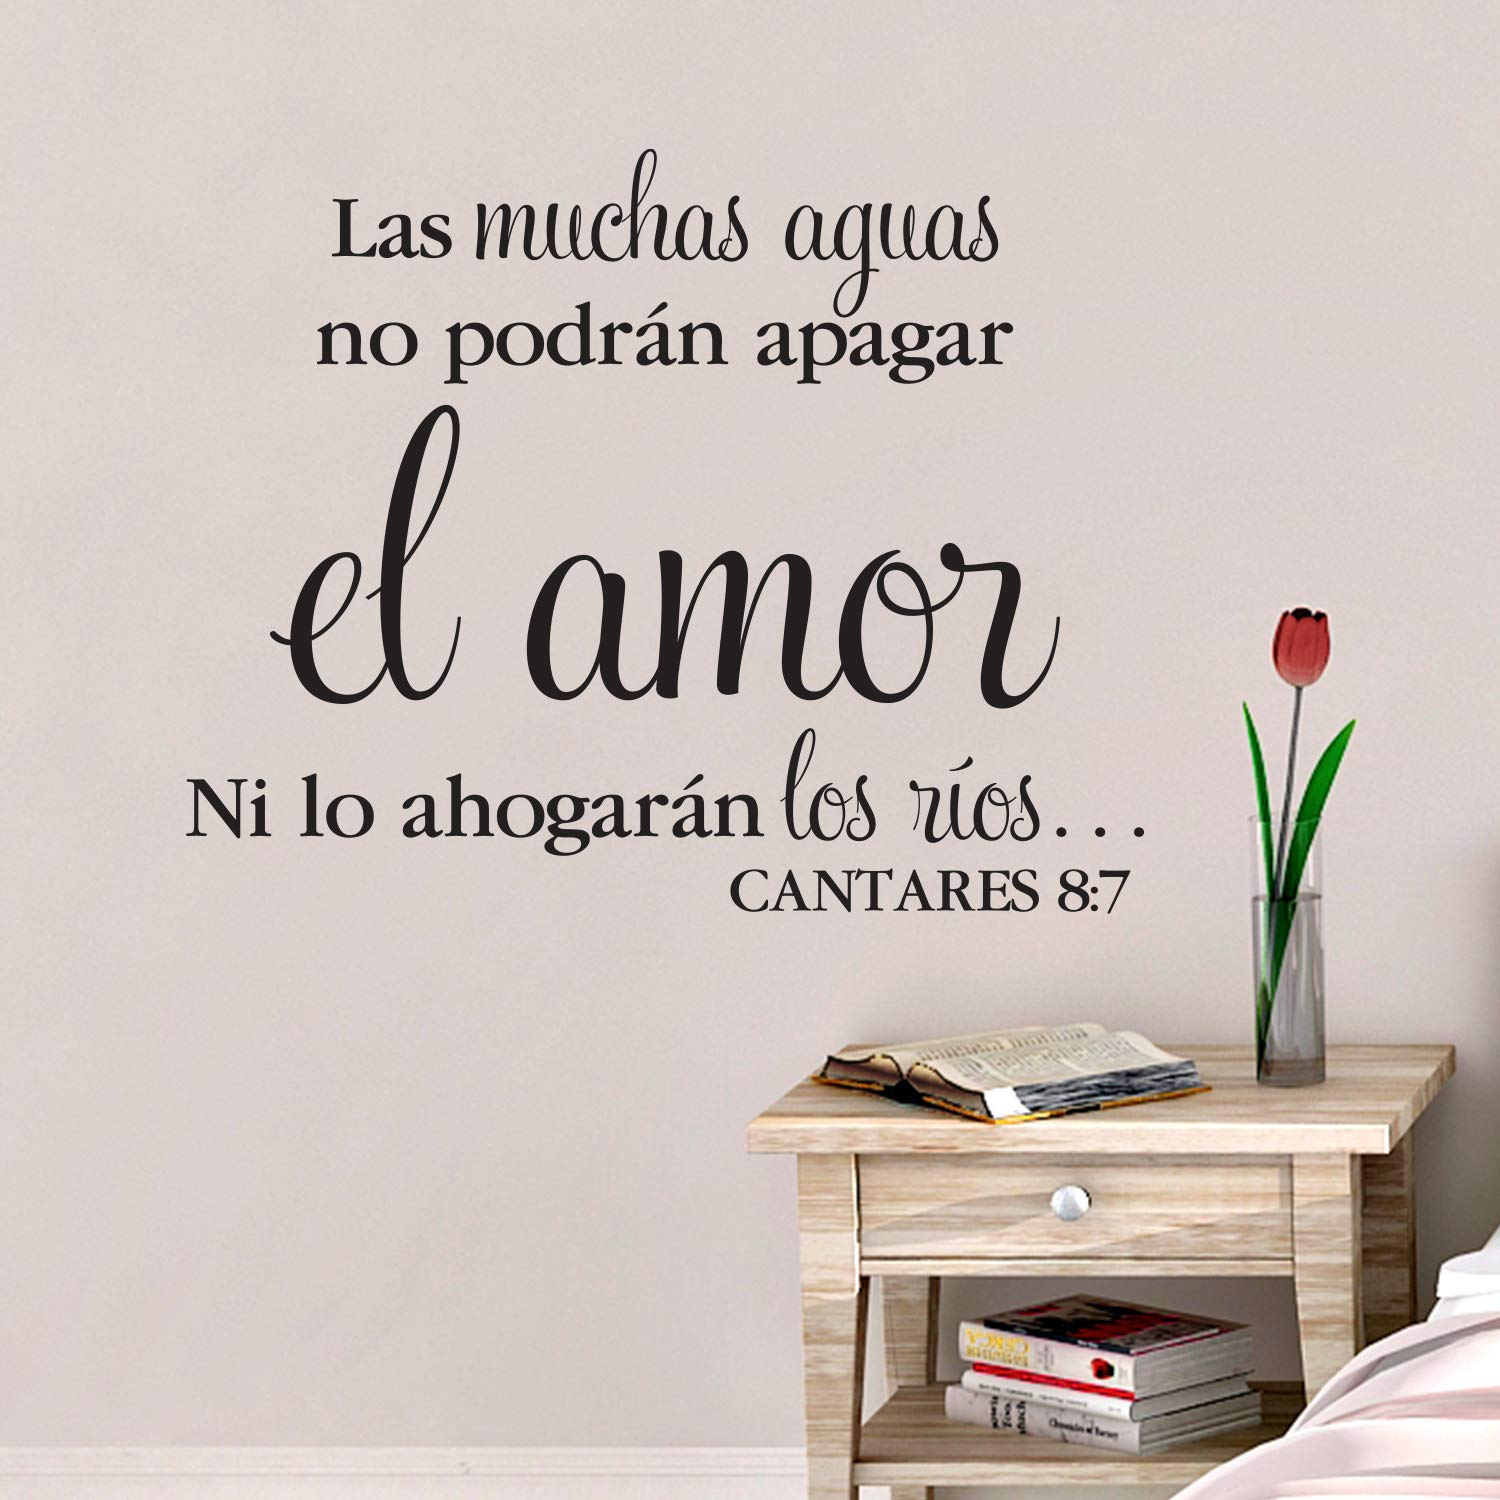 The many waters cannot quench love Cantares 8 Las muchas aguas no podran apagar el amor Song of Solomon 8:7 Spanish Vinyl Wall Decal by Wild Eyes Signs SOS8V7-0001 Spanish Bible Verse